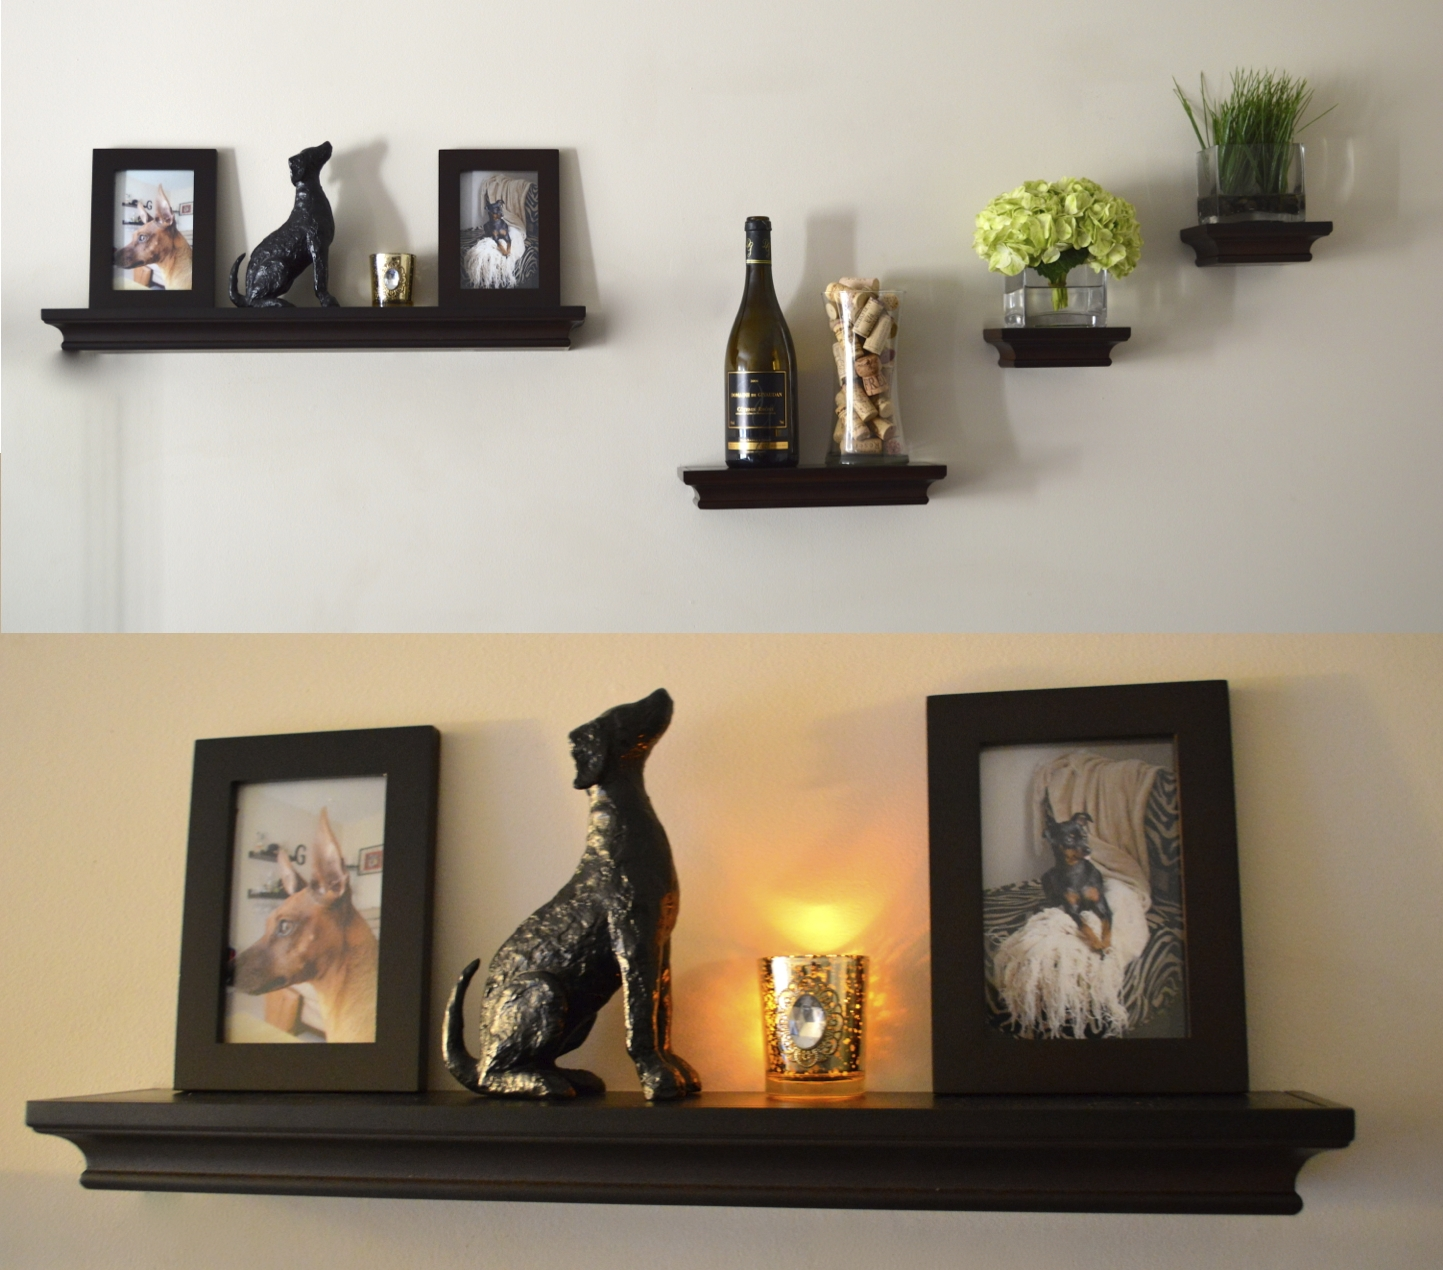 living room black wooden floating shelves with molding stone dog wall decor silver steel lamp light white glass bottle clear small plant pots ture frames decorations kitchen